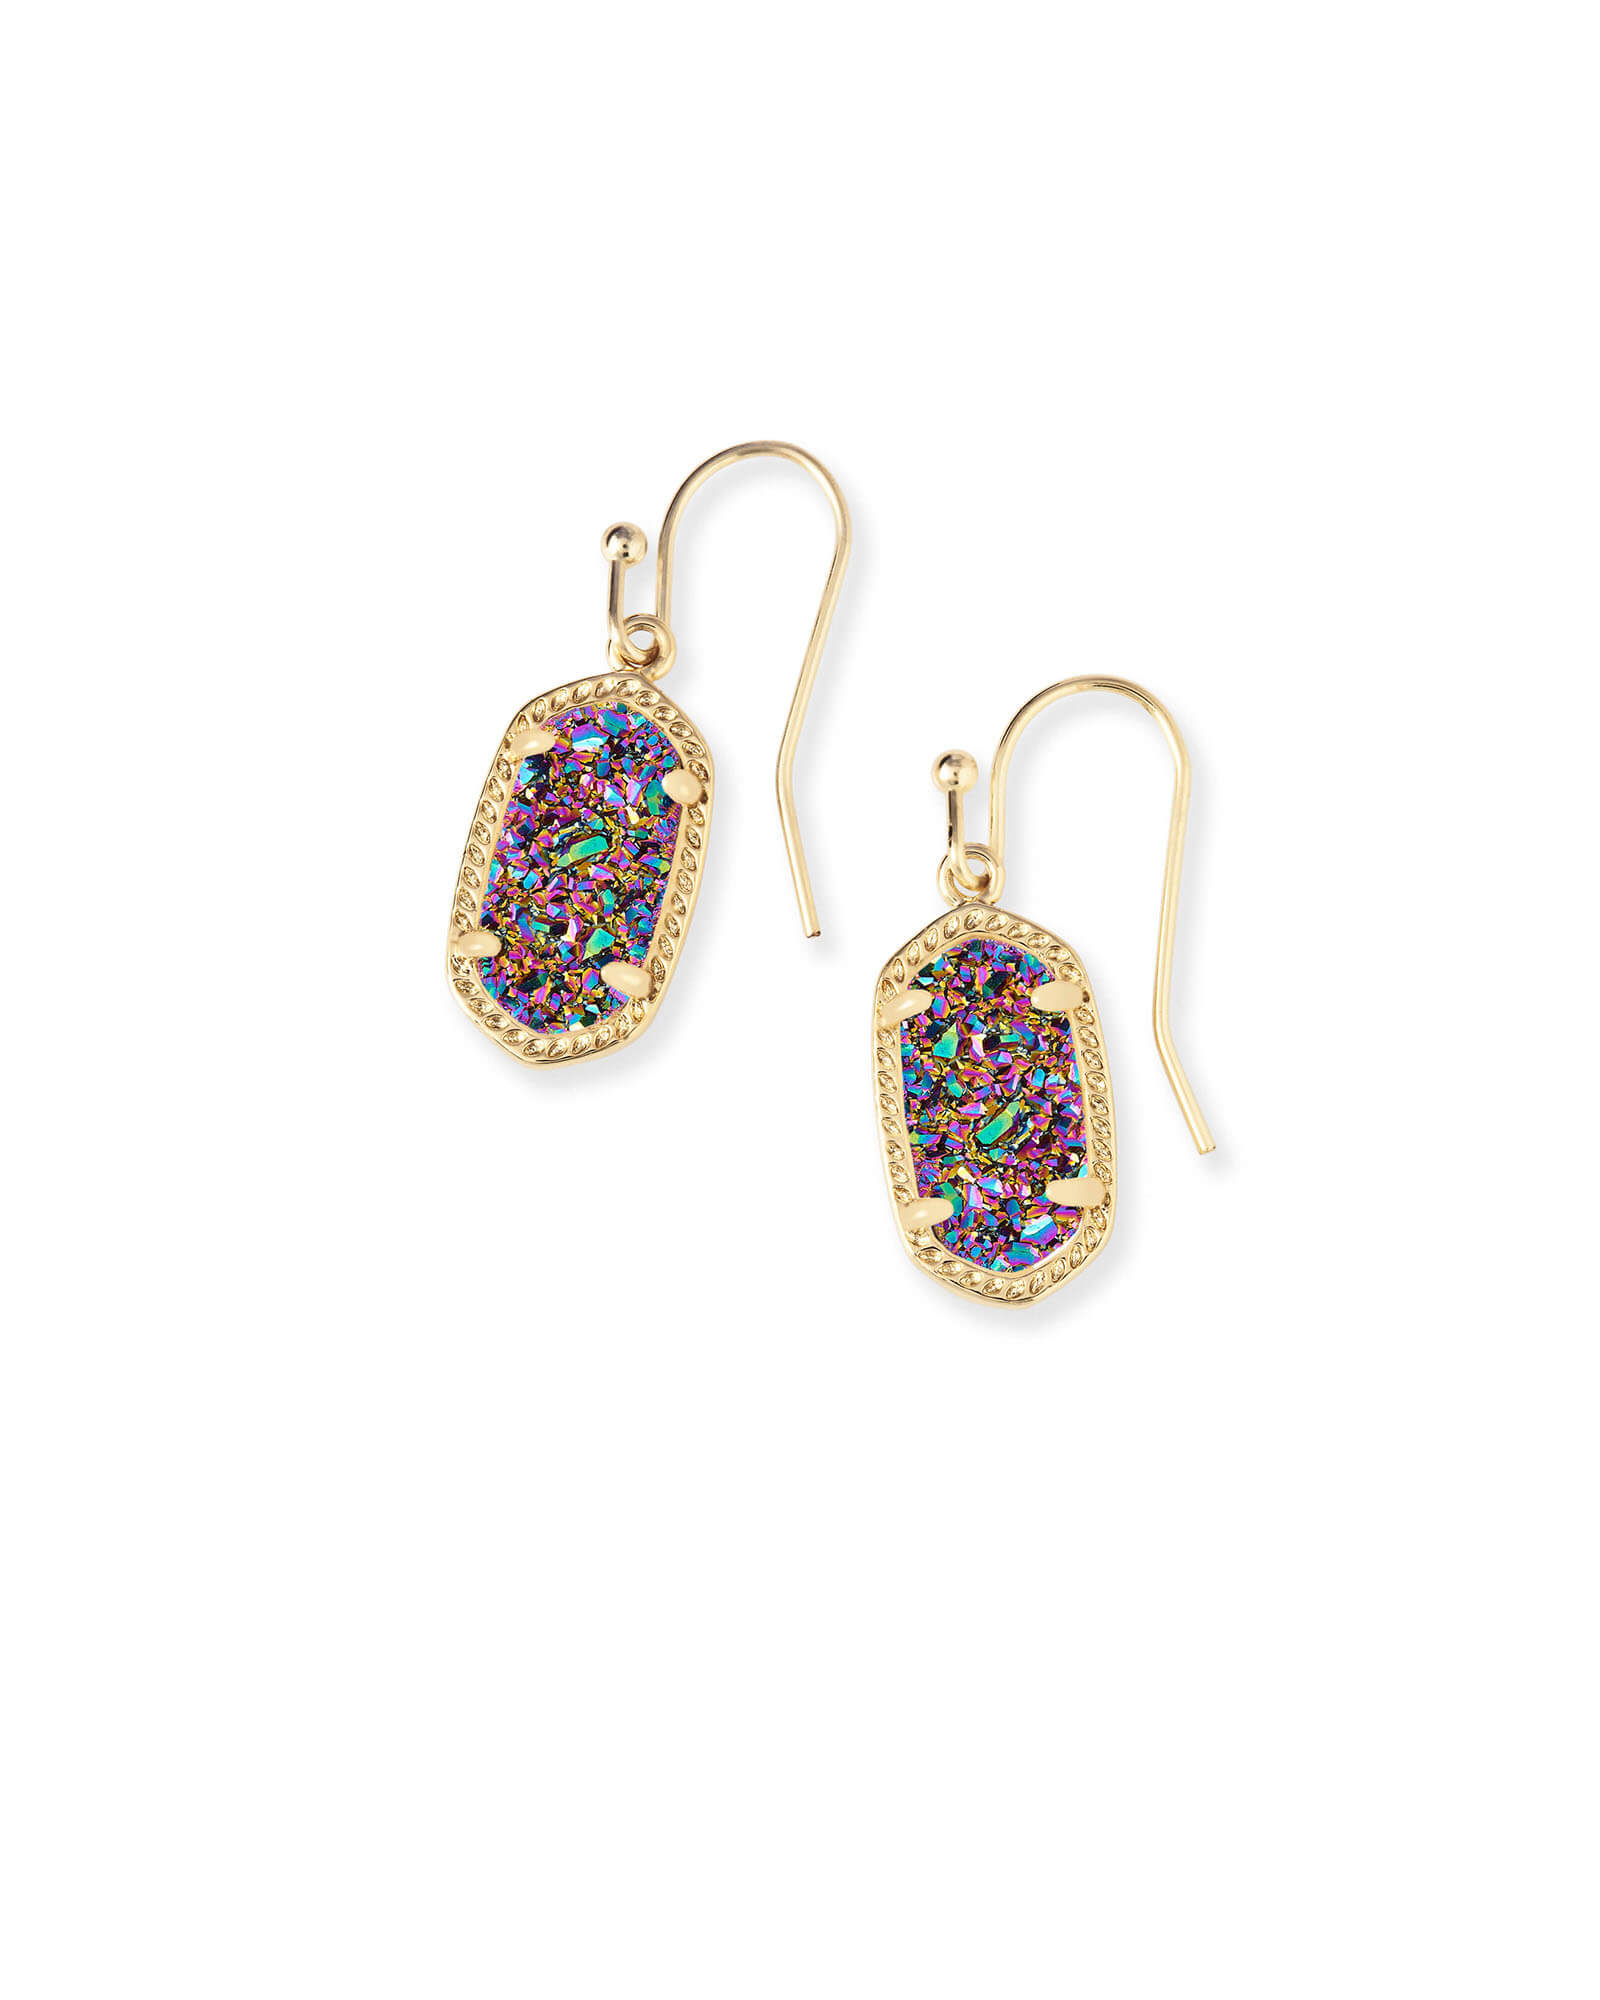 Lee Gold Drop Earrings in Multicolor Drusy